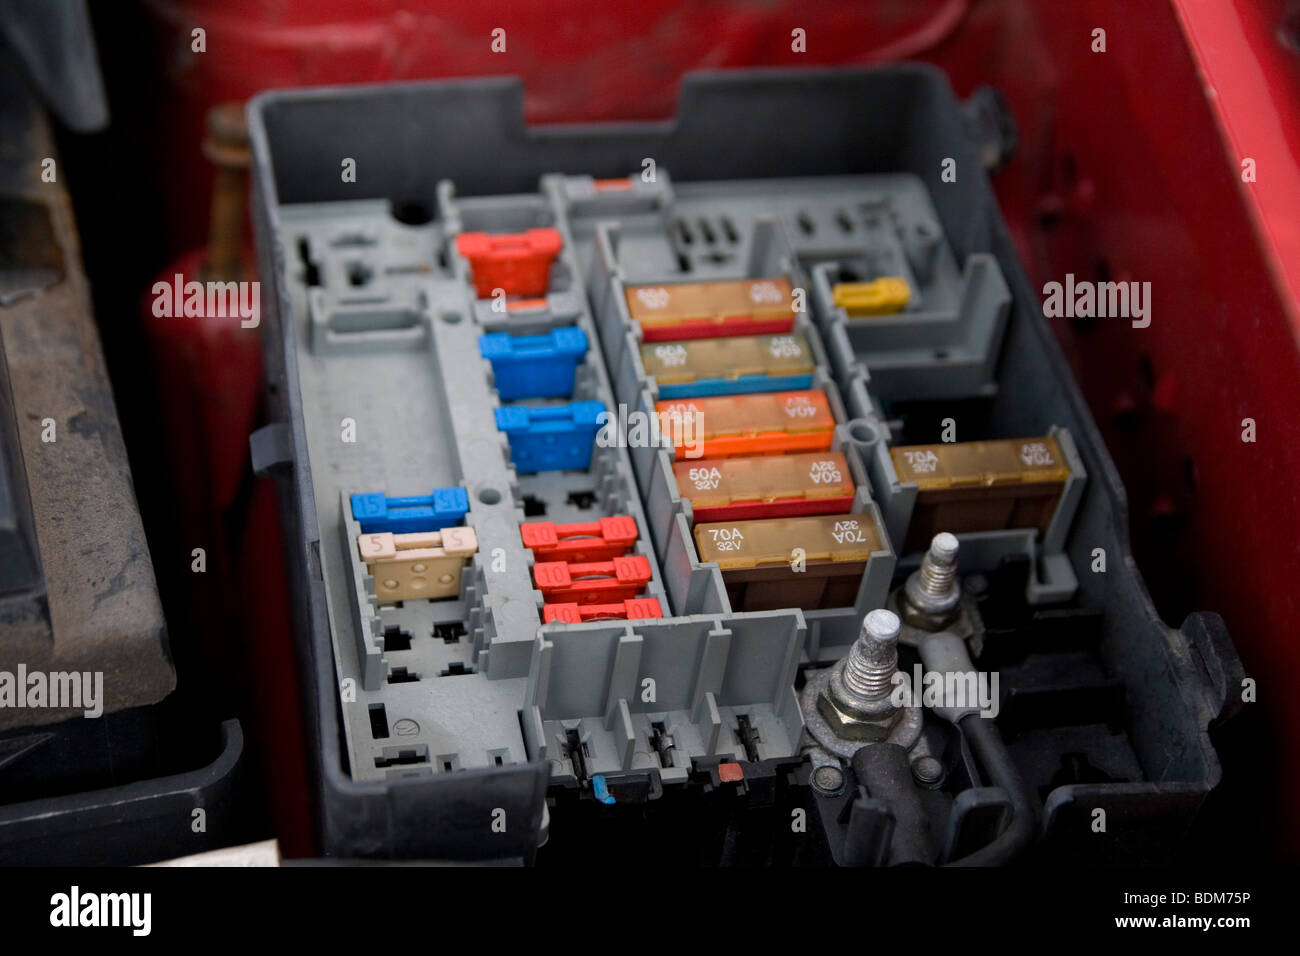 citroen berlingo fuse box stock photo 25645586